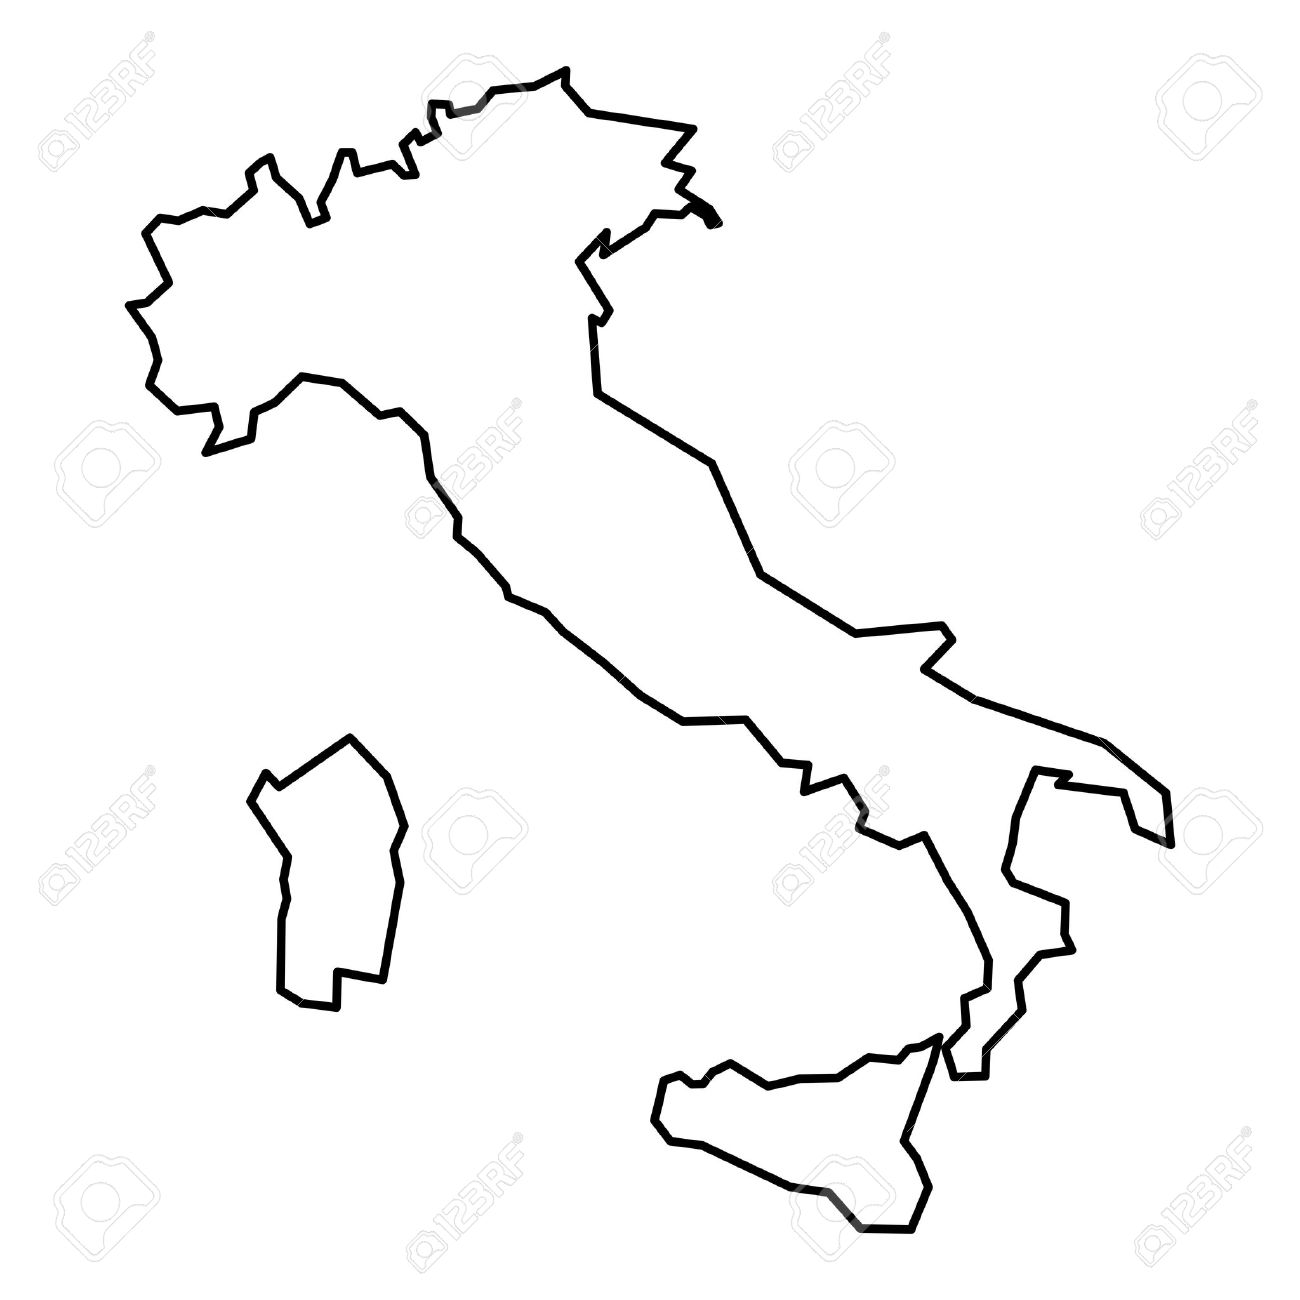 Black And White Map Of Italy.Simple Contour Map Of Italy Black Outline Map Isolated On White